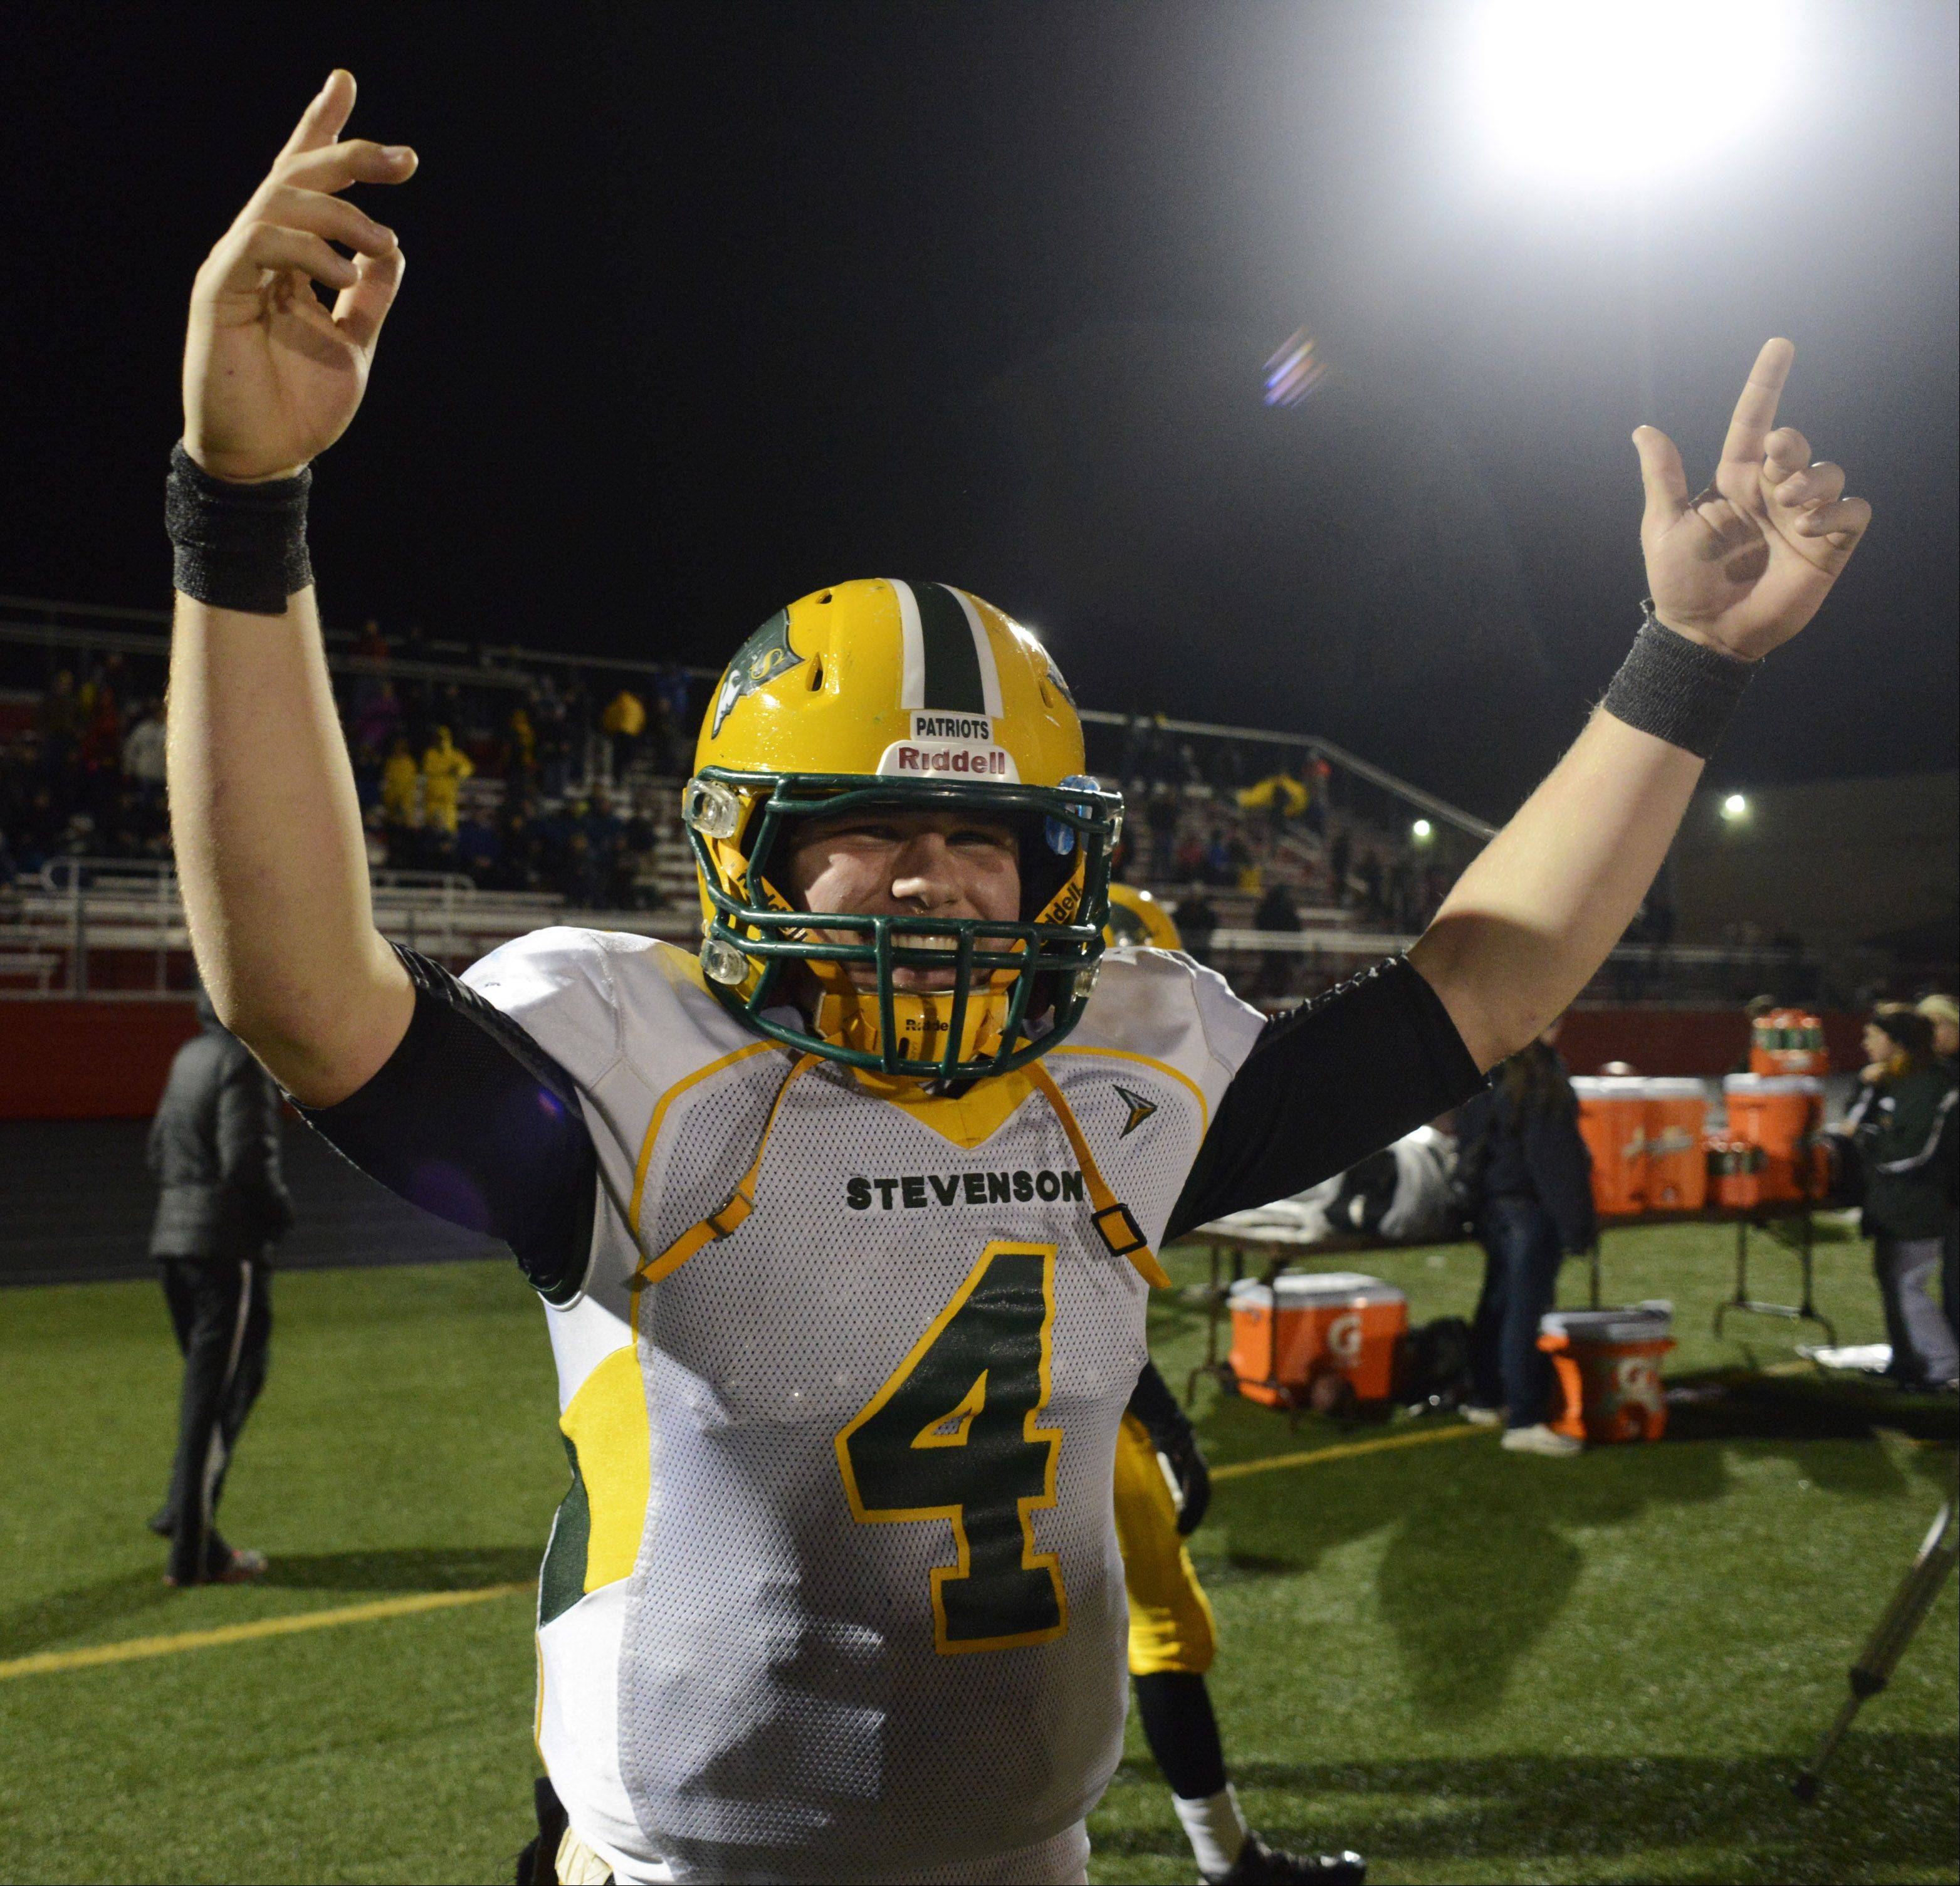 Stevenson quarterback Willie Bourbon celebrates as the clock winds down in the closing seconds of Saturday's 14-0 victory over Barrington.